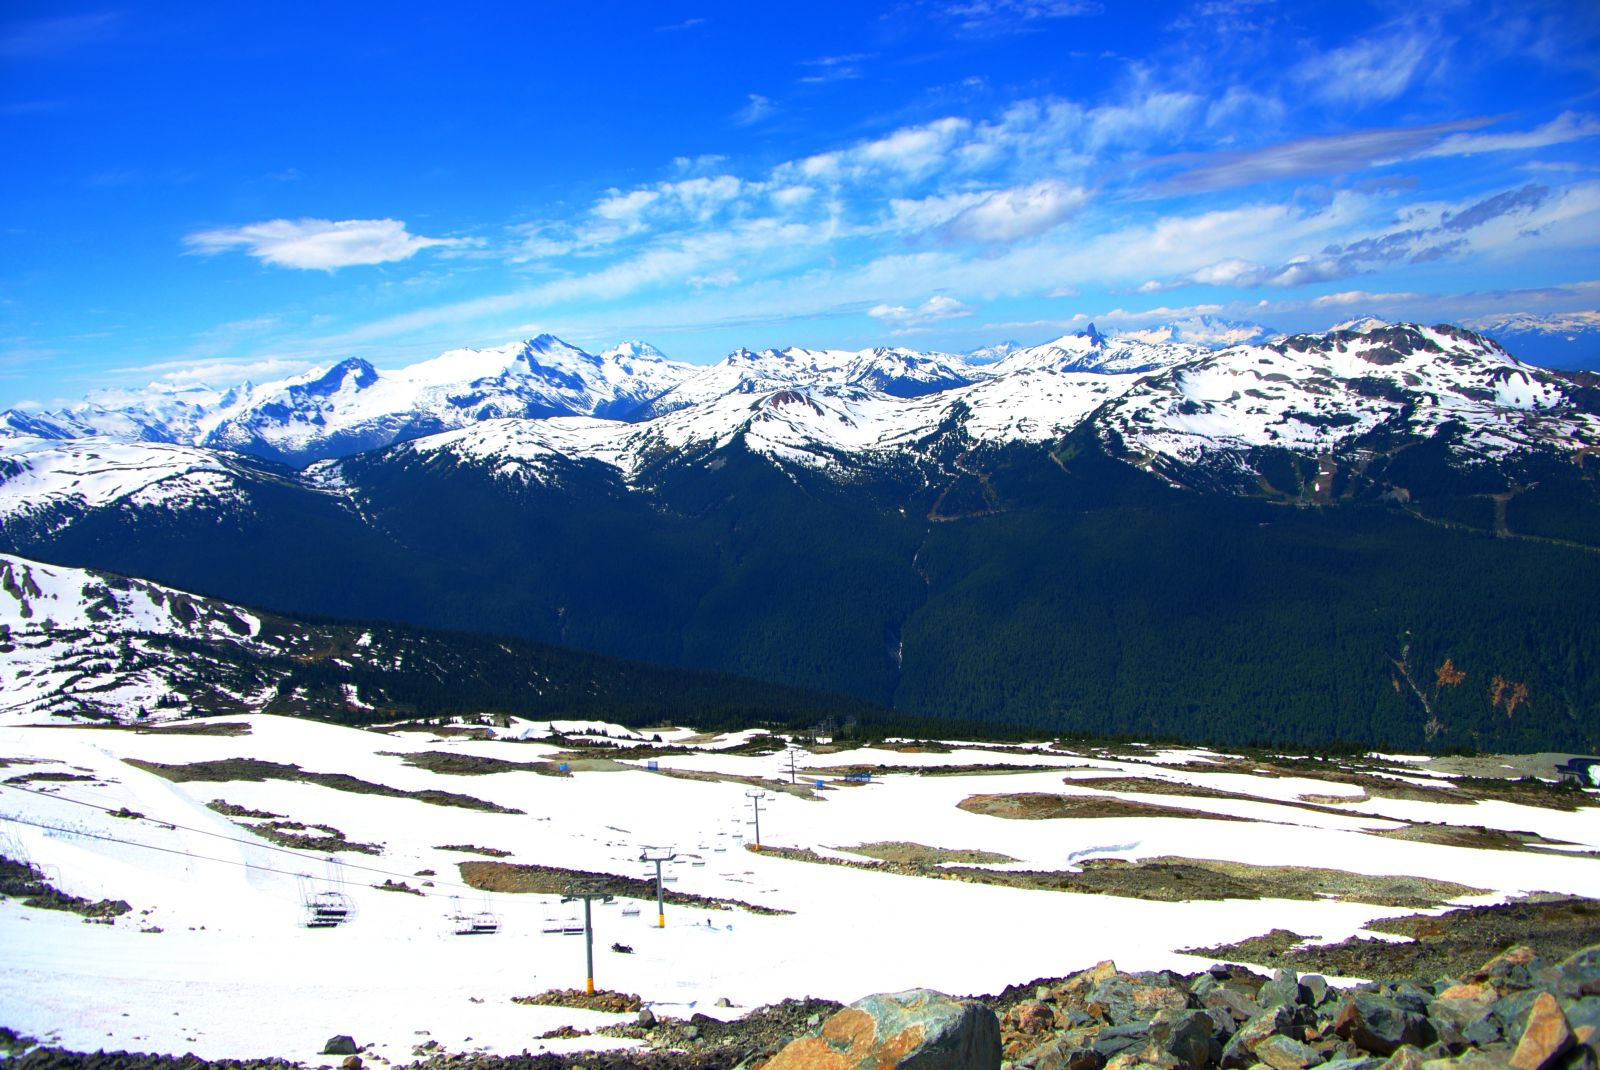 Top of Whistler in the summer